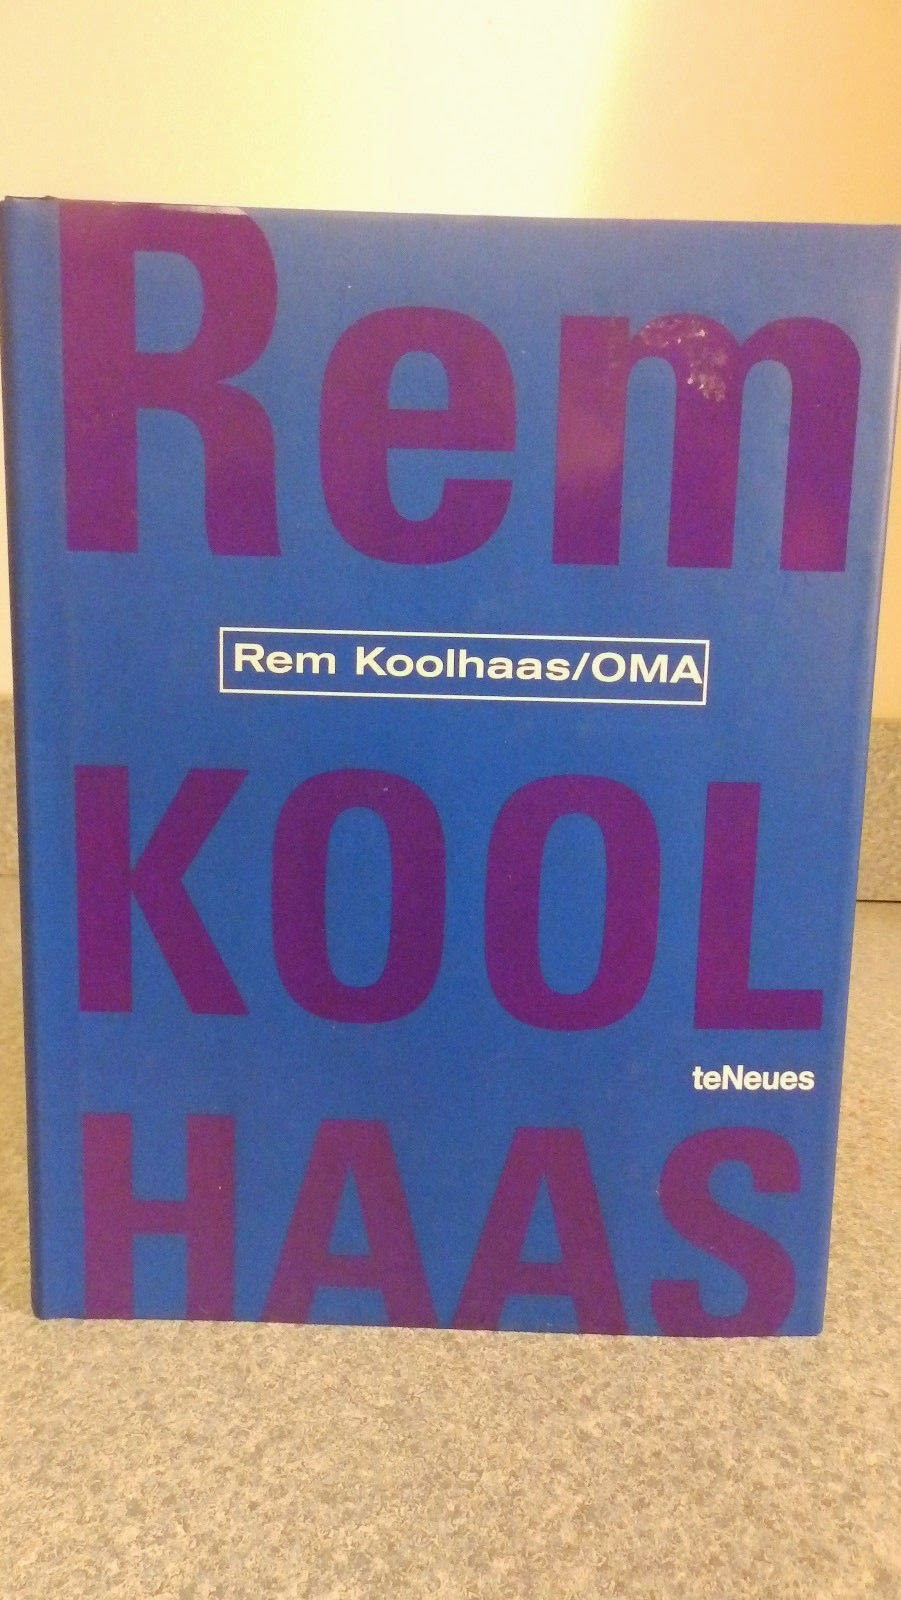 http://www.ebay.com/itm/Rem-Koolhaas-OMA-hardcover-book-Architecture-English-German-Italian-French-/321689700552?pt=LH_DefaultDomain_0&hash=item4ae63348c8